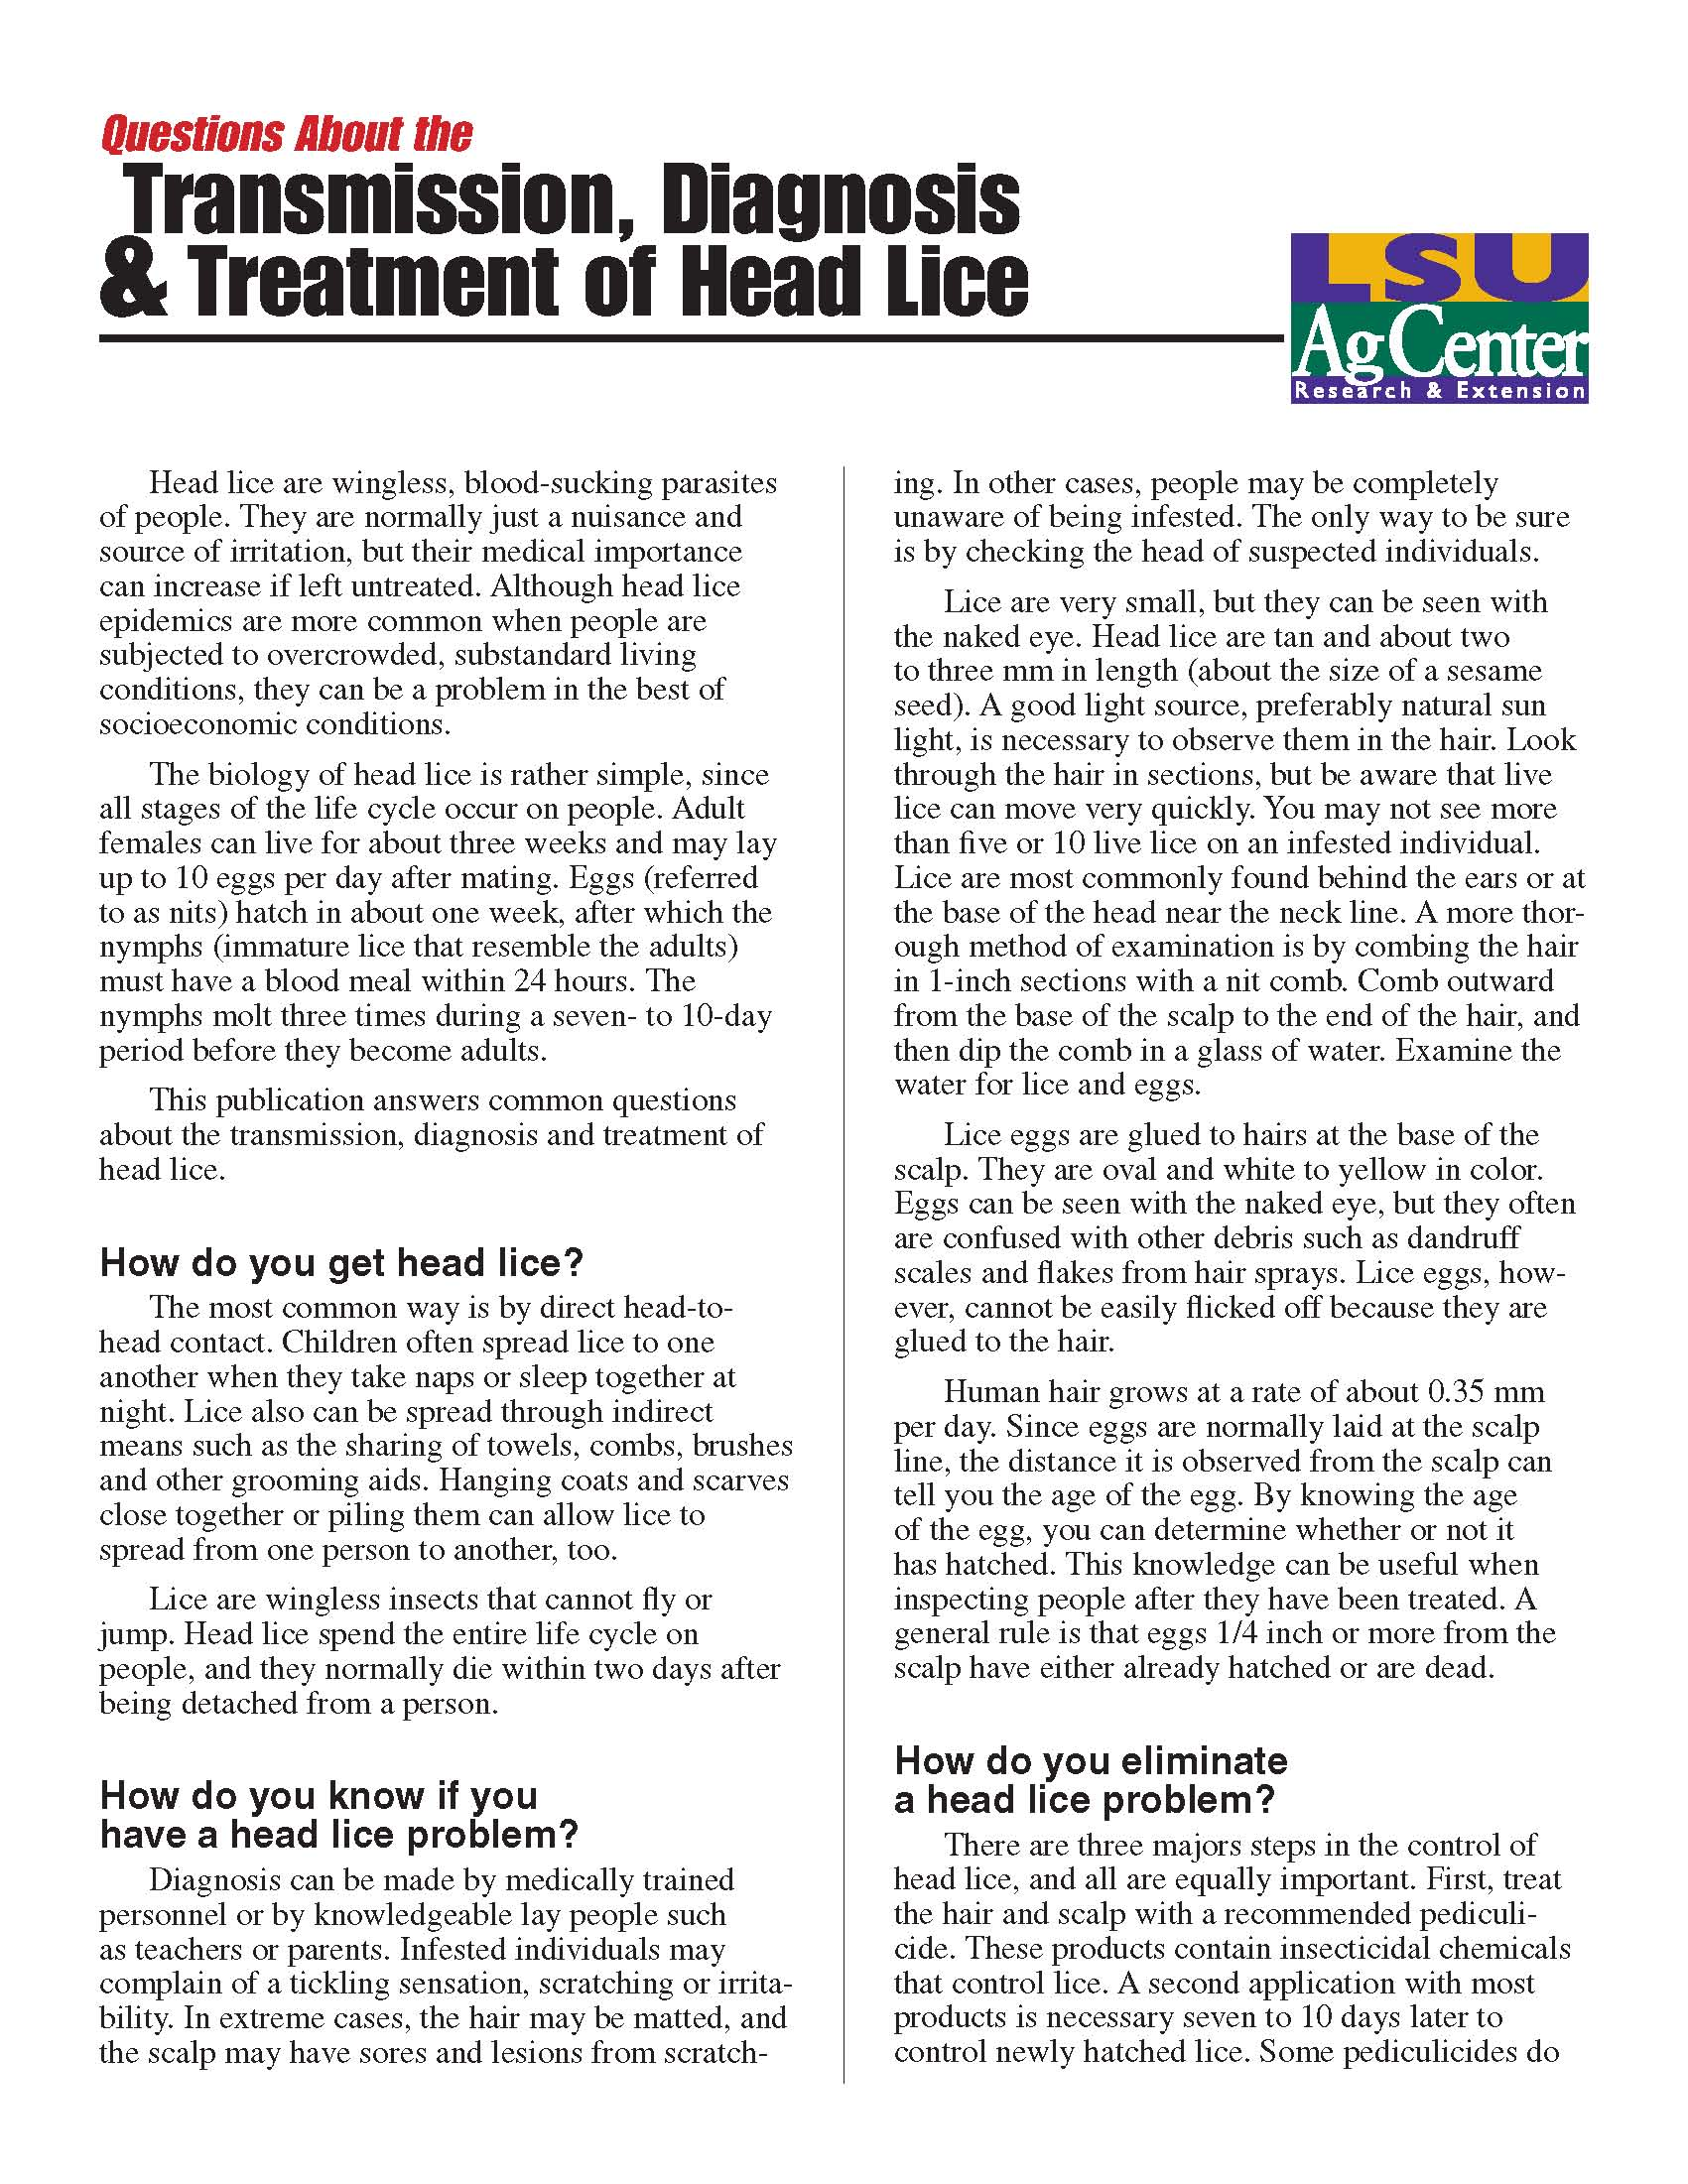 Questions about the Transmission Diagnosis and Treatment of Head Lice